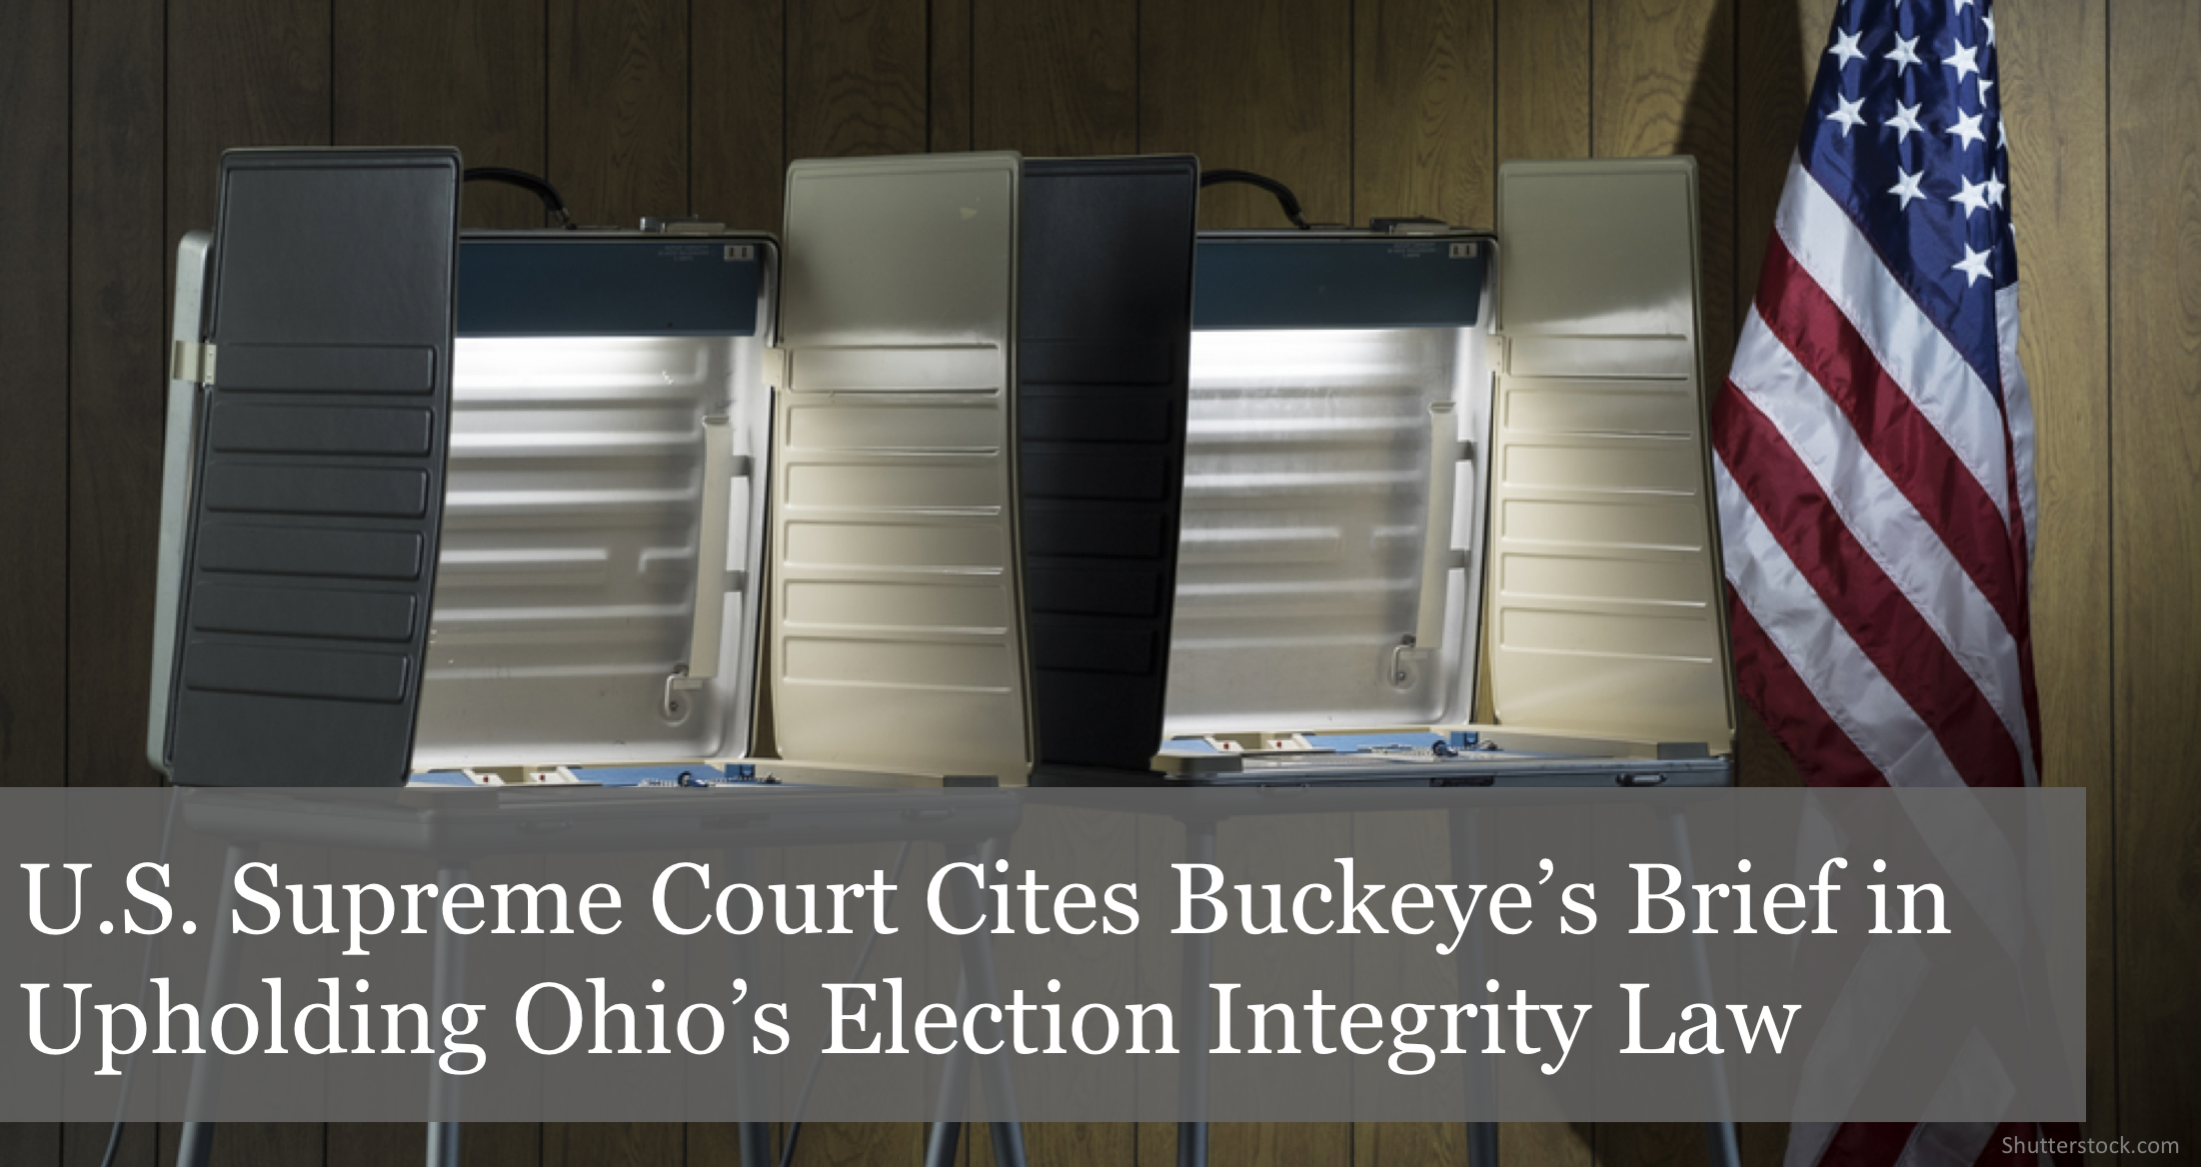 U.S. Supreme Court Cites The Buckeye Institute's Brief in Upholding Ohio's Election Integrity Law